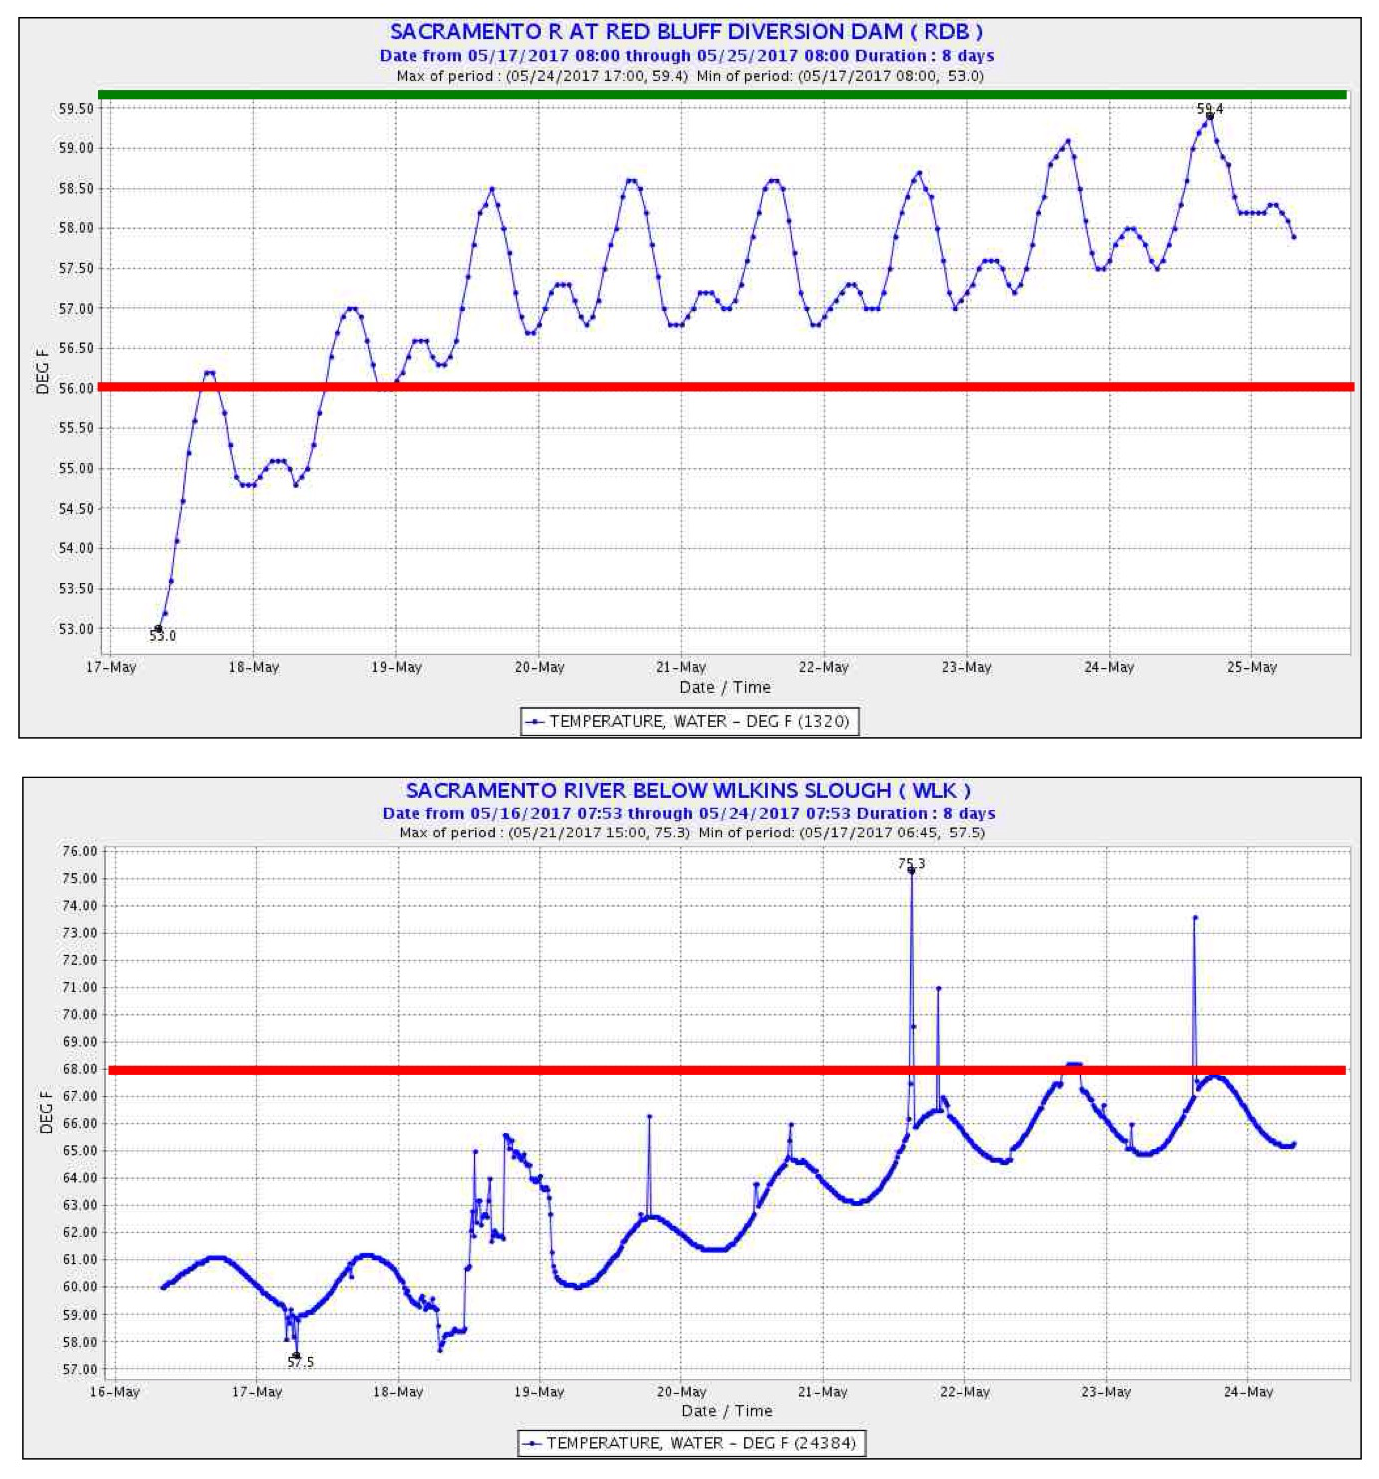 June 2017 california fisheries blog sacramento river water temperature at a red bluff river mile 240 and b wilkins slough river mile 125 during may 2017 red lines depict basin plan geenschuldenfo Image collections